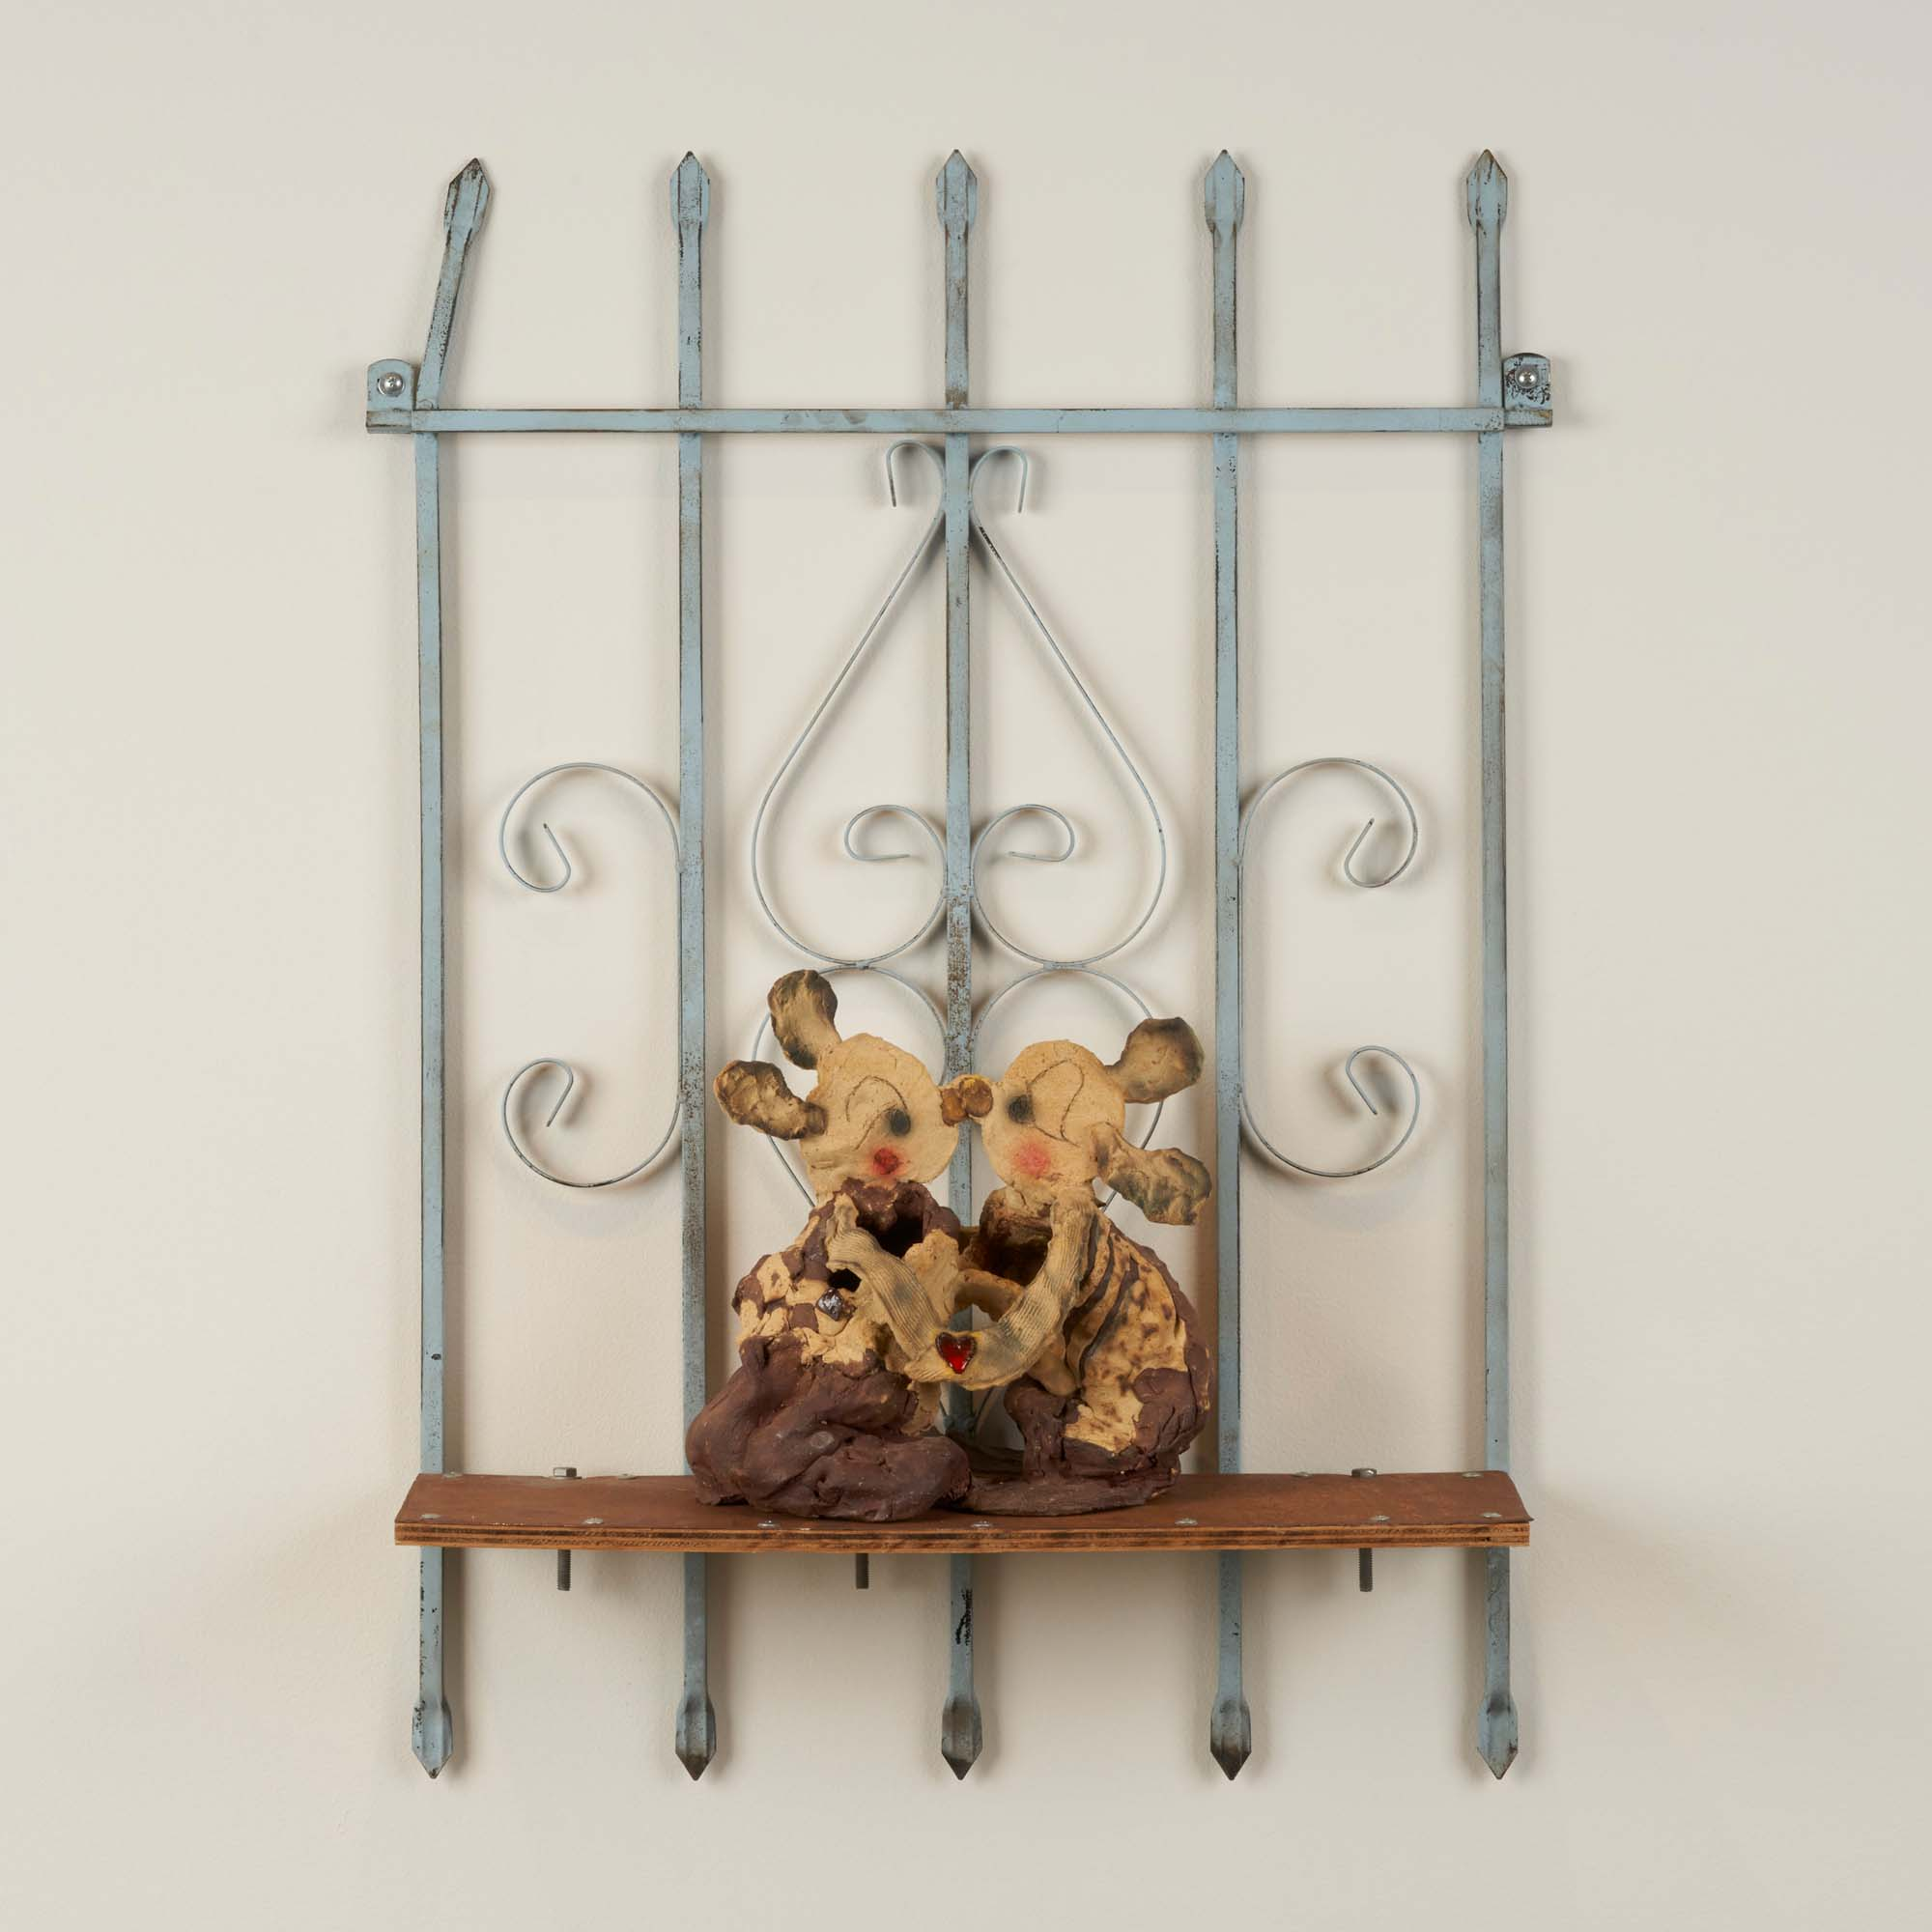 """Image of ceramic sculpture on shelf made from iron window grate, titled """"Kiss"""" by Diana Yesenia Alvarado."""